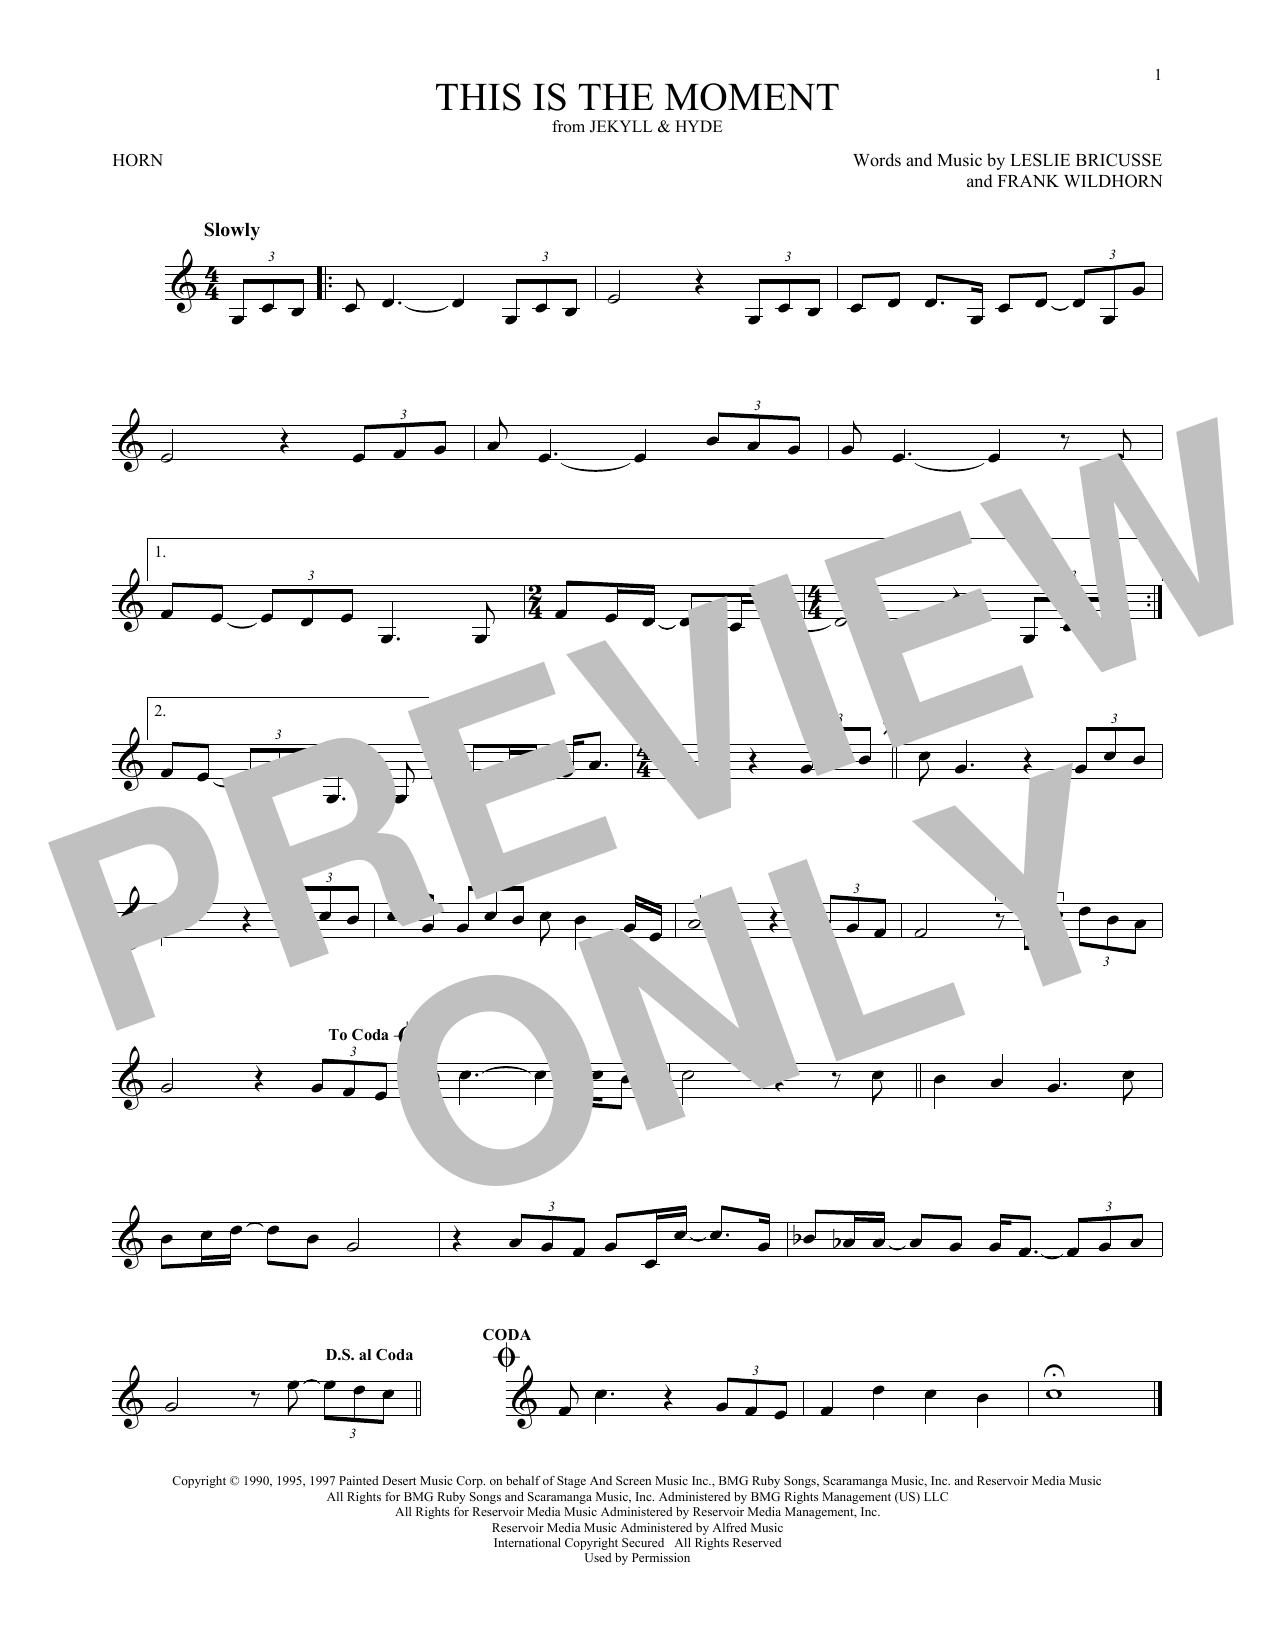 French Horn at Stanton\'s Sheet Music